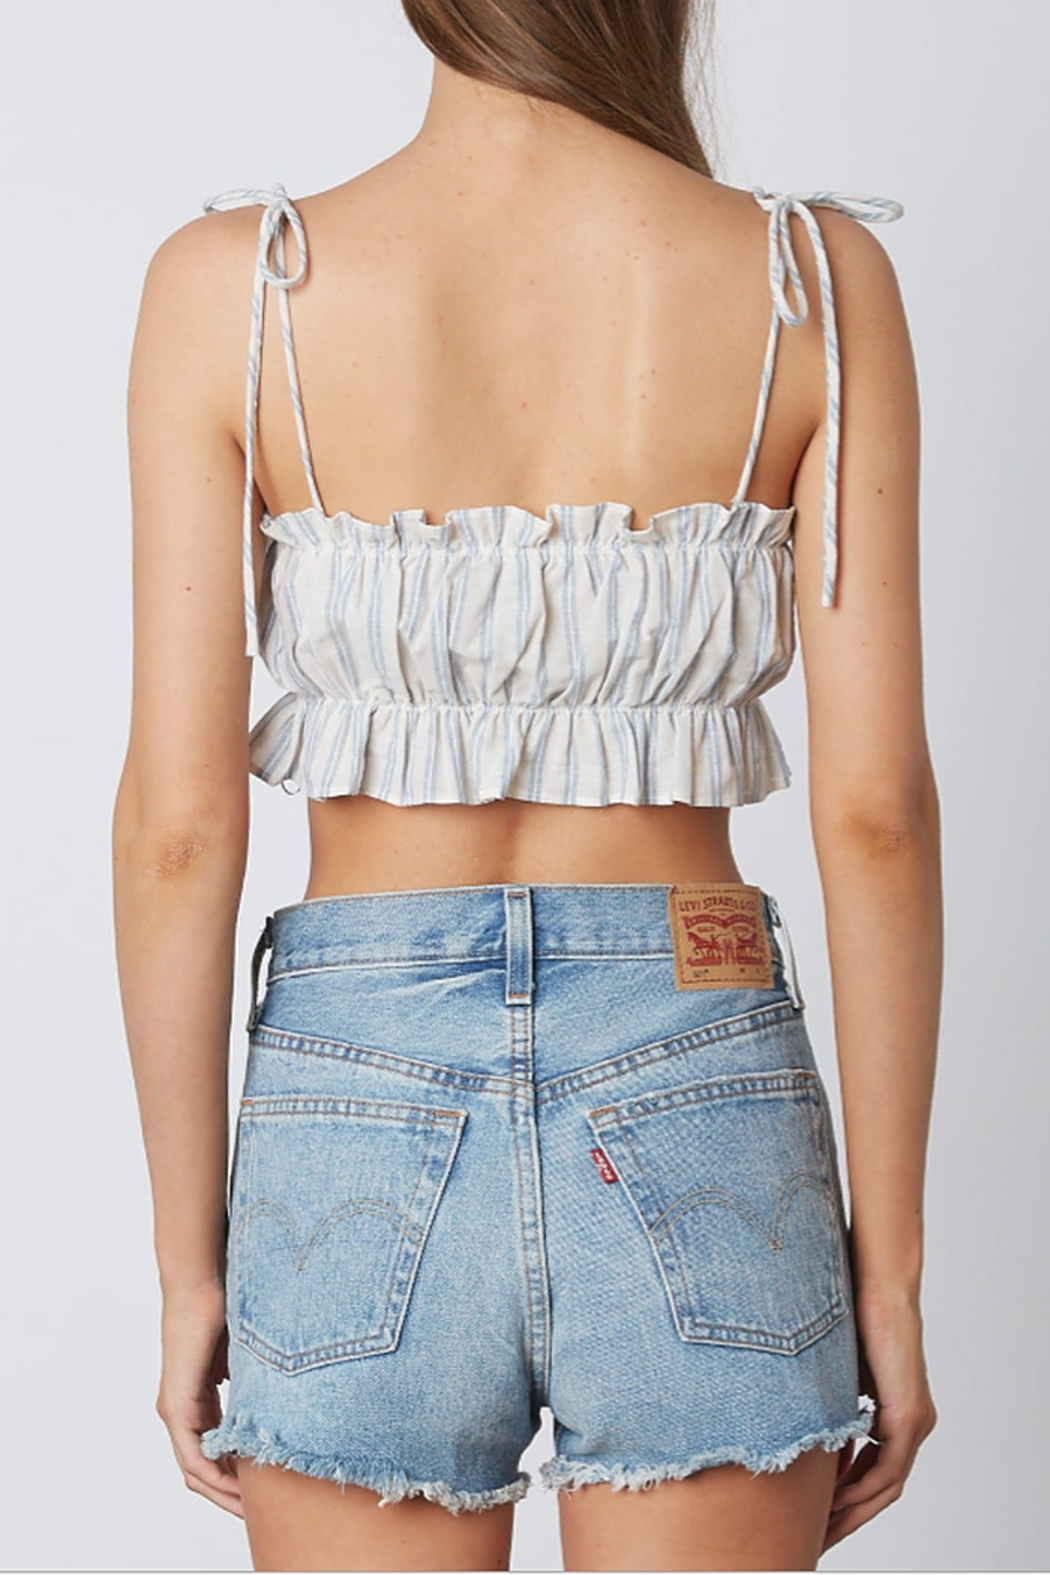 Cotton Candy  Ruffle Trim Crop Top - Front Full Image